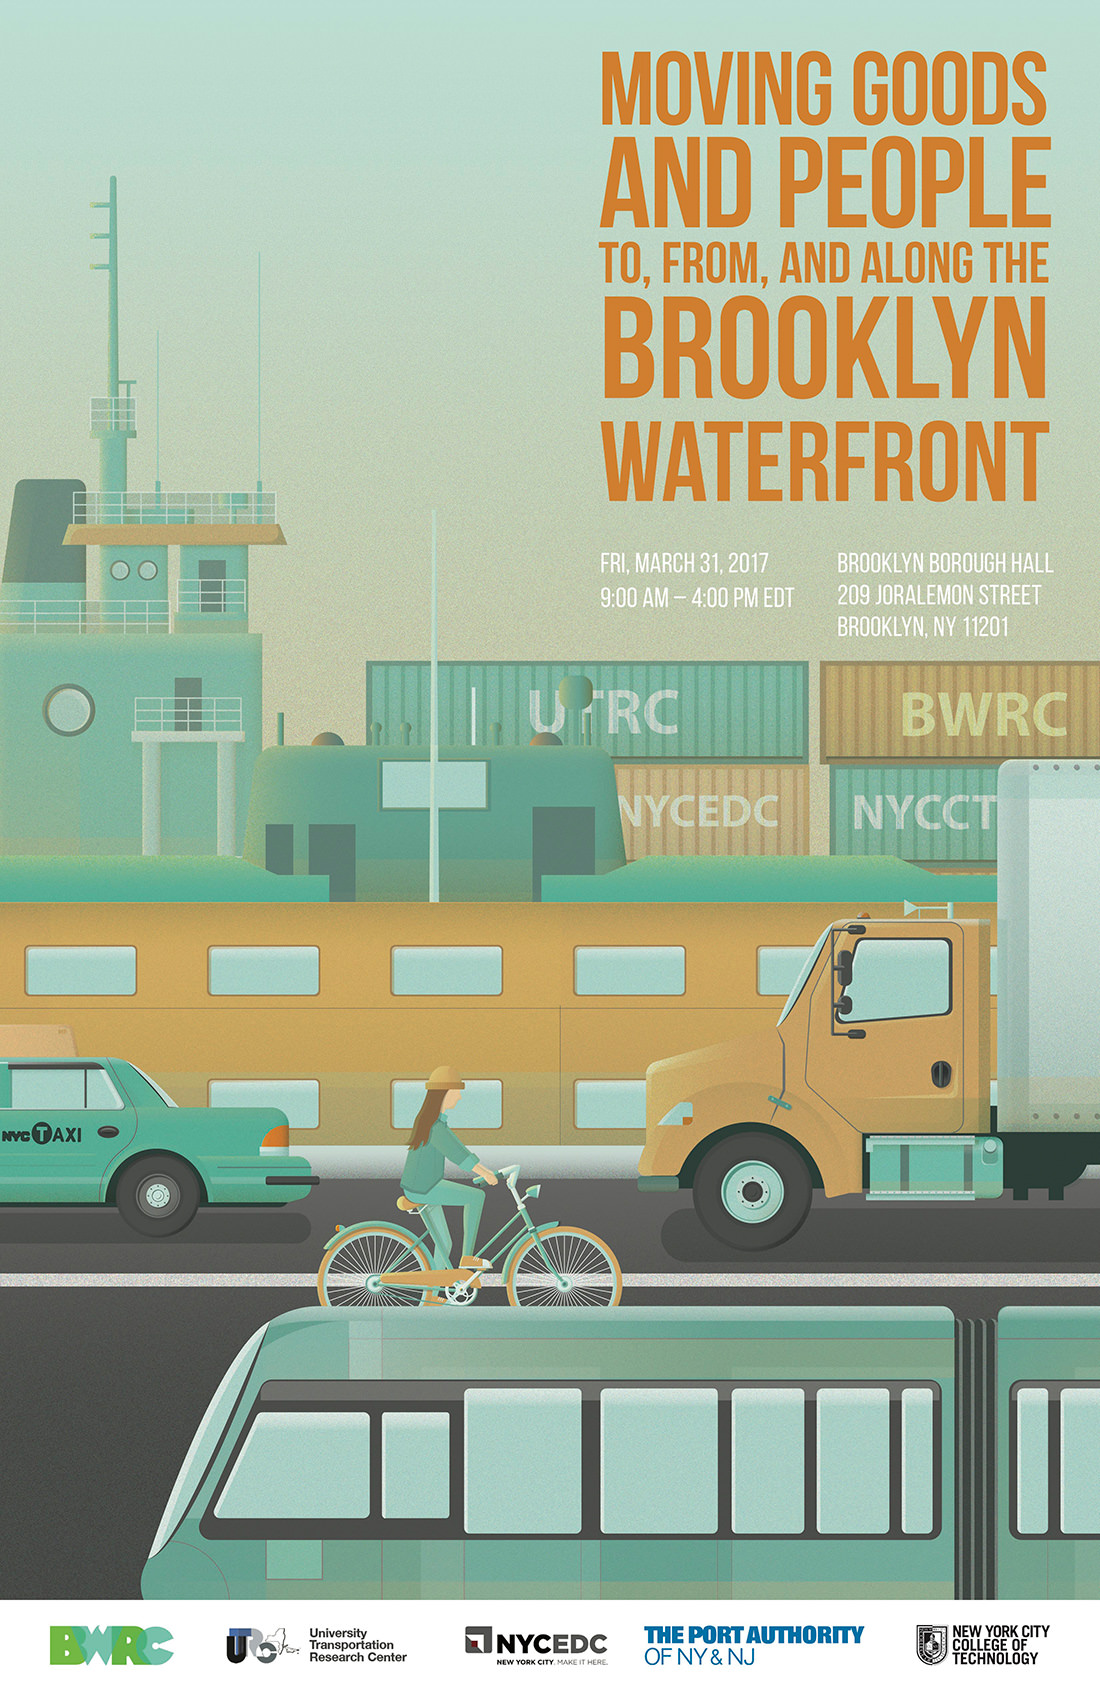 BWRC Conference: Moving Goods and People to, from, <br>and along the Brooklyn Waterfront 1